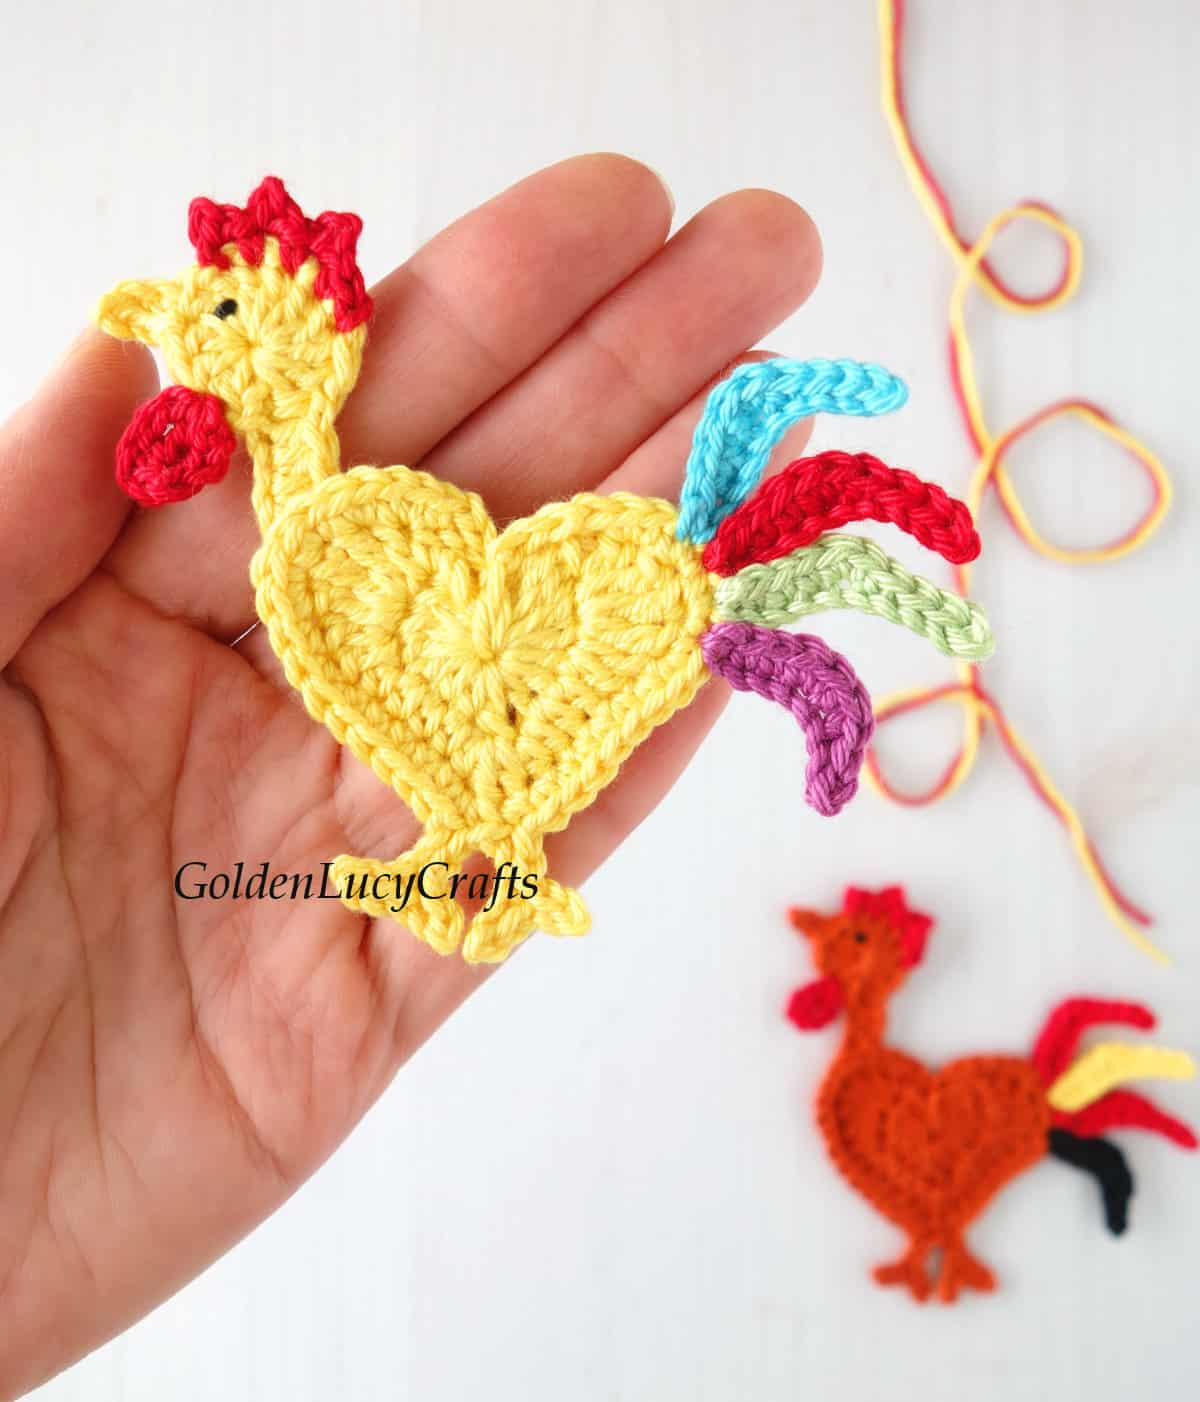 Crochet rooster applique in the palm of a hand.